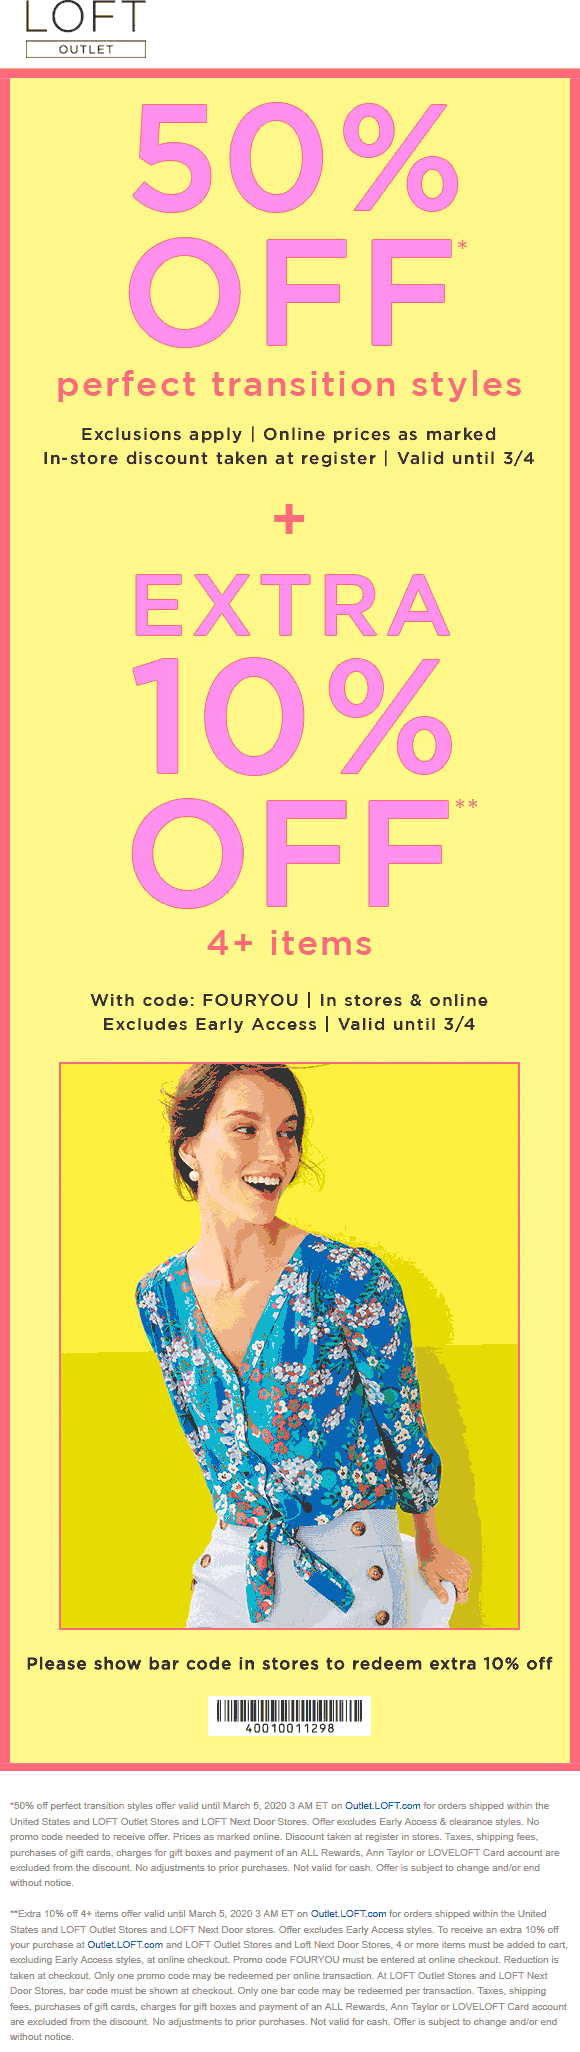 LOFT Outlet coupons & promo code for [April 2020]